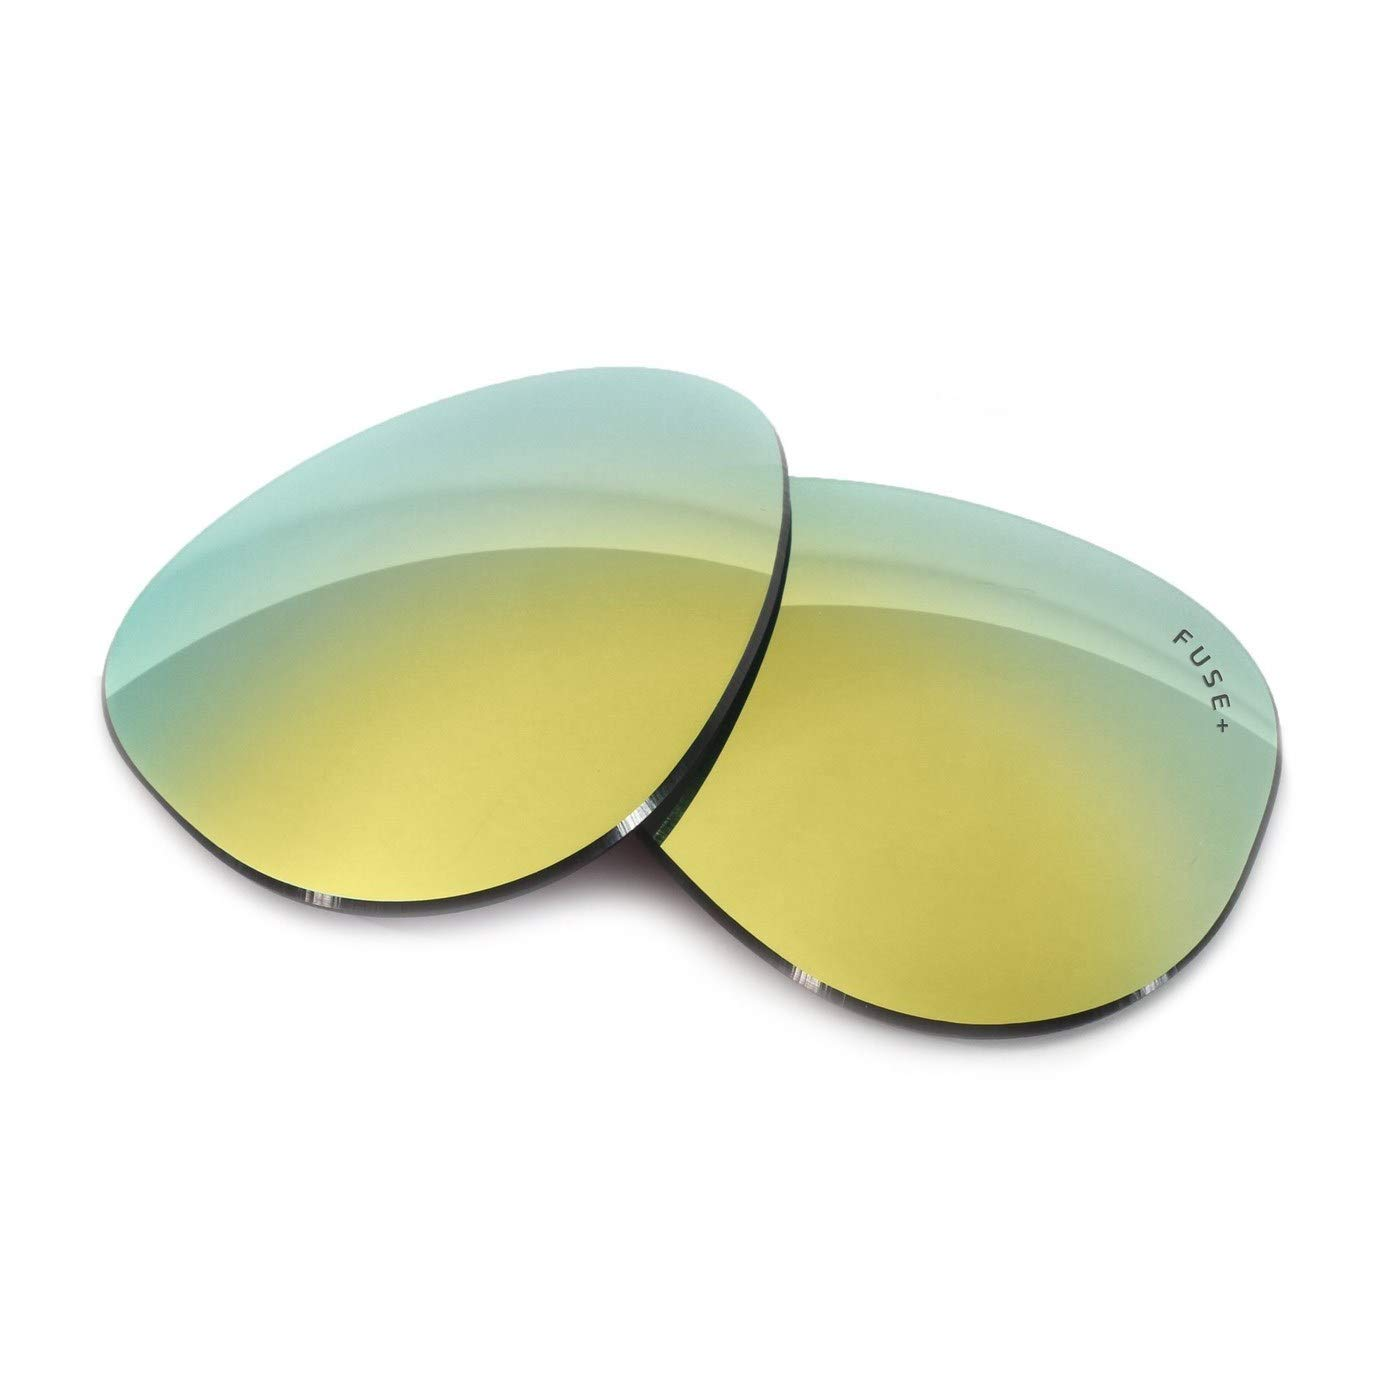 Plus Replacement Lenses for Saint Laurent SC18 Fuse Lenses Fuse